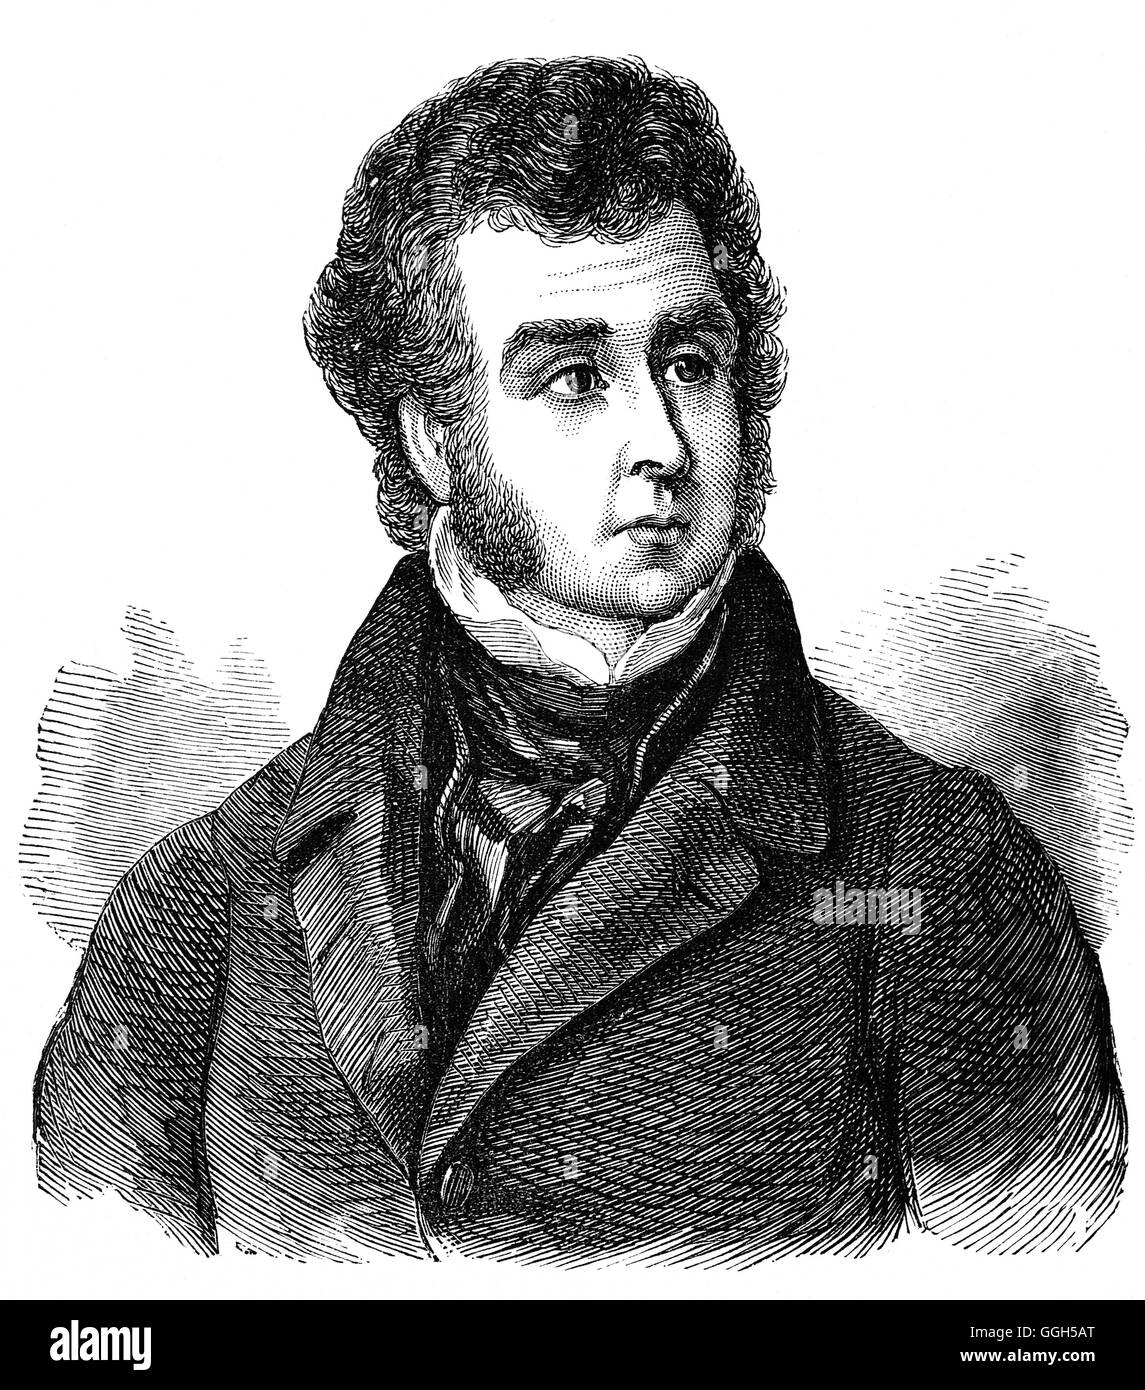 Ebenezer Elliott (1781 – 1849) was an English poet, known as the 'Corn Law Rhymer' for leading the fight - Stock Image